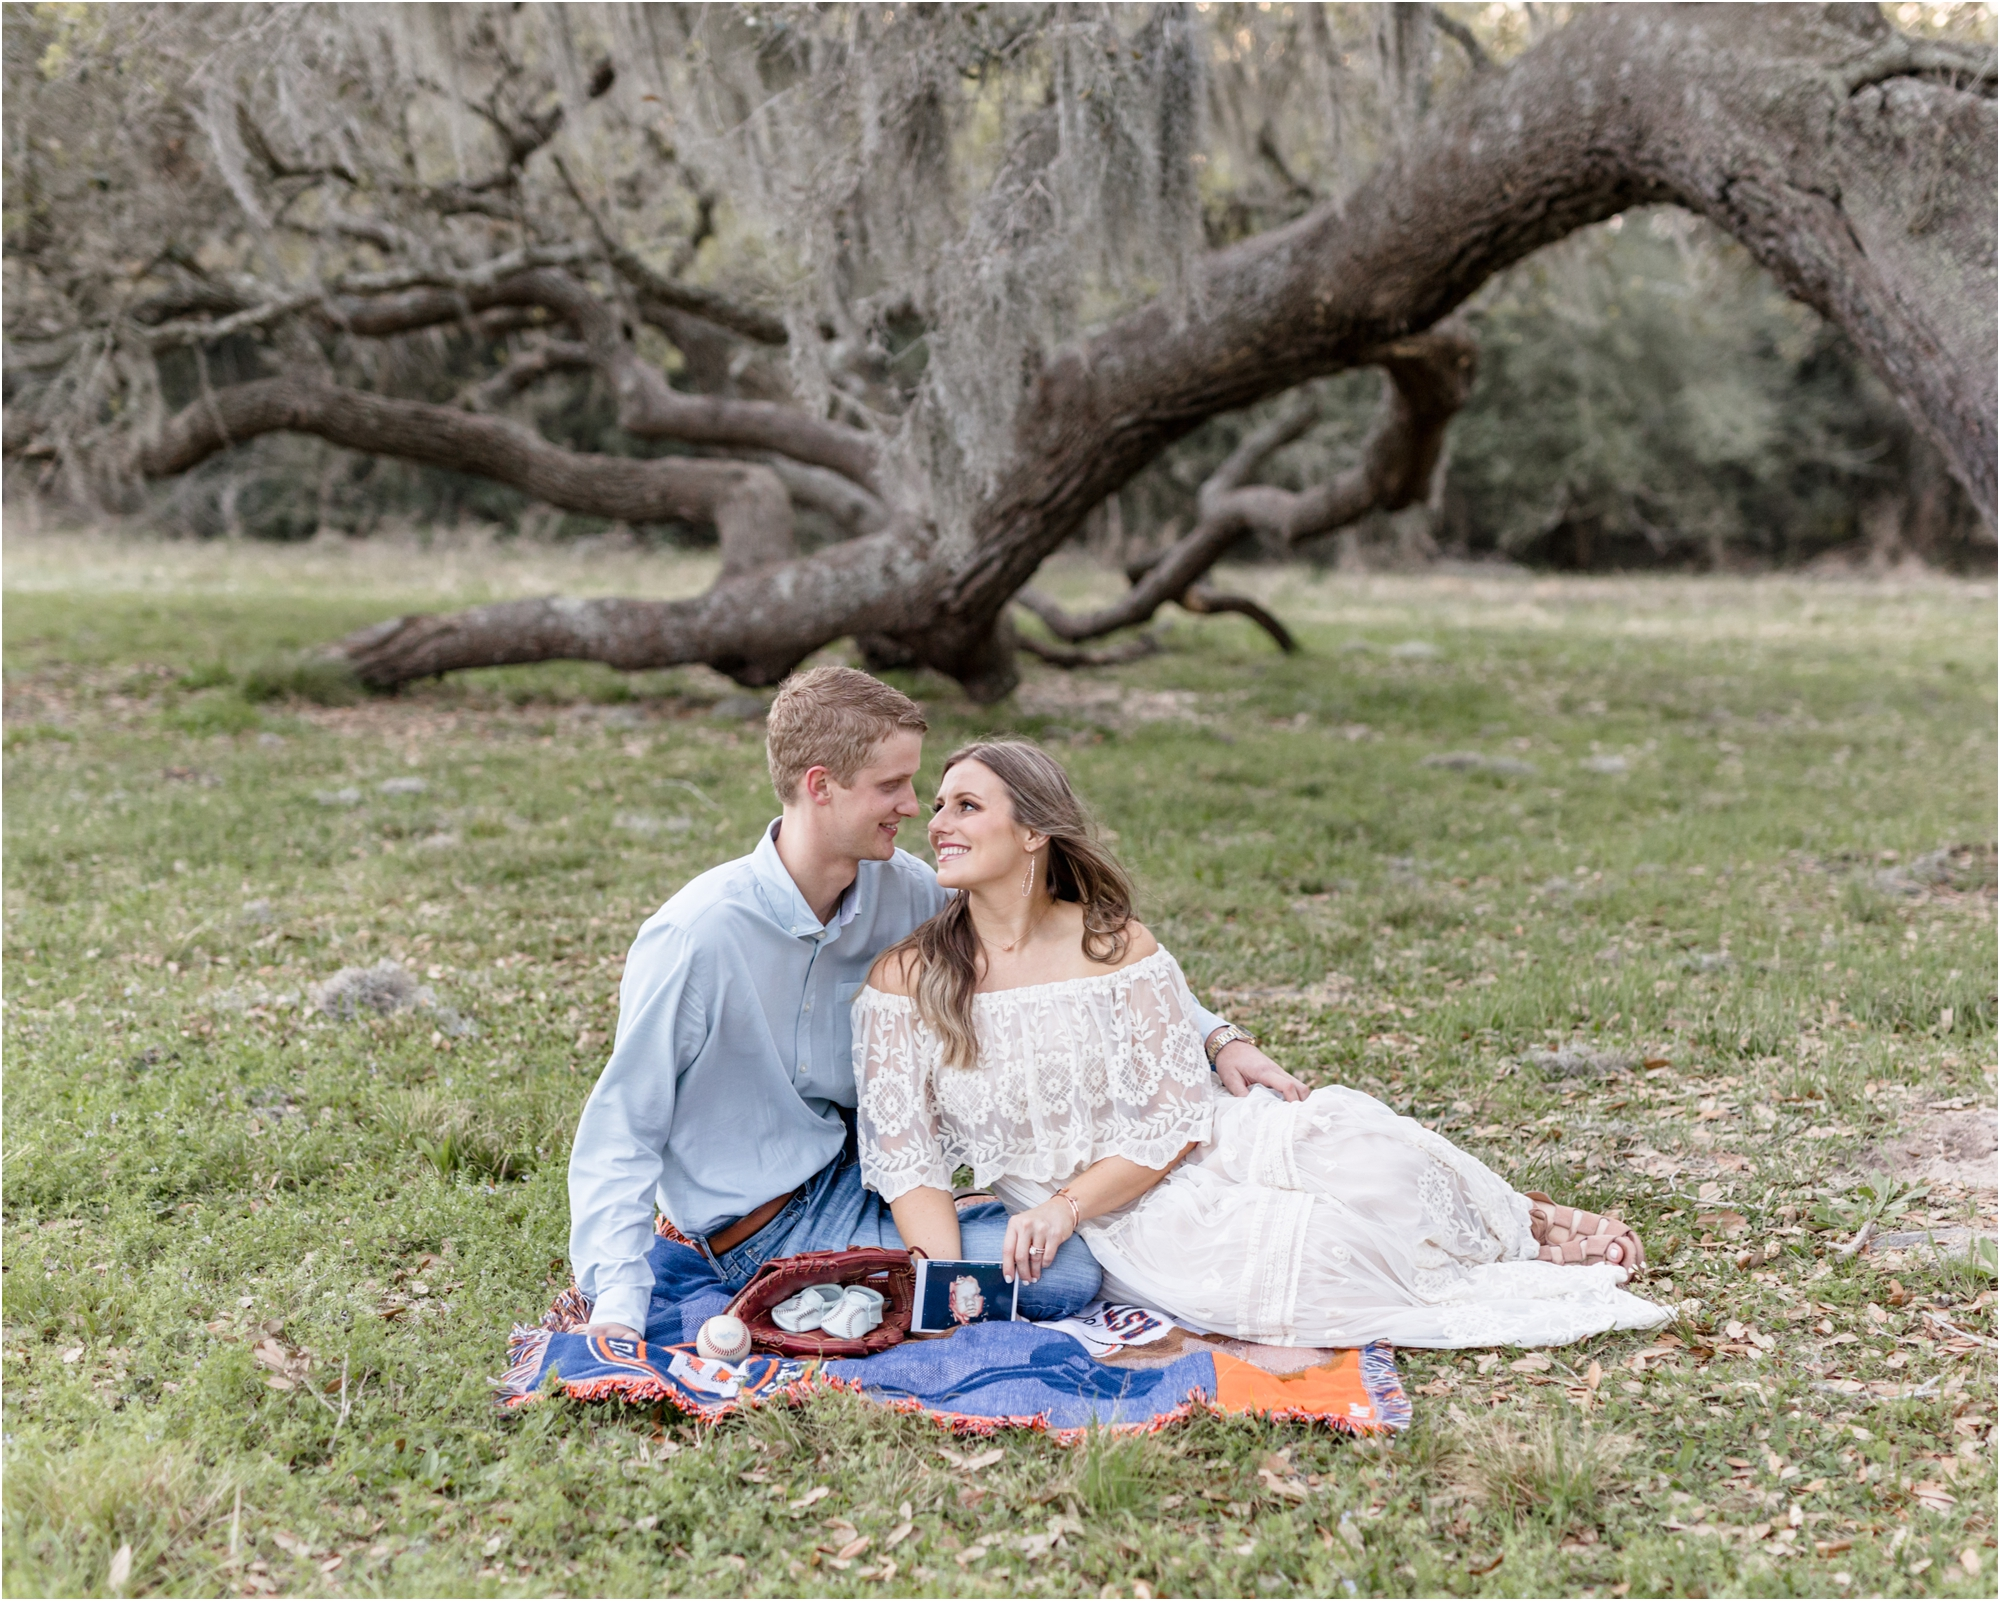 Parents sitting on blanket with ultrasound image under moss-covered tree in Houston, TX. Photo by Lifetime of Clicks Photography.